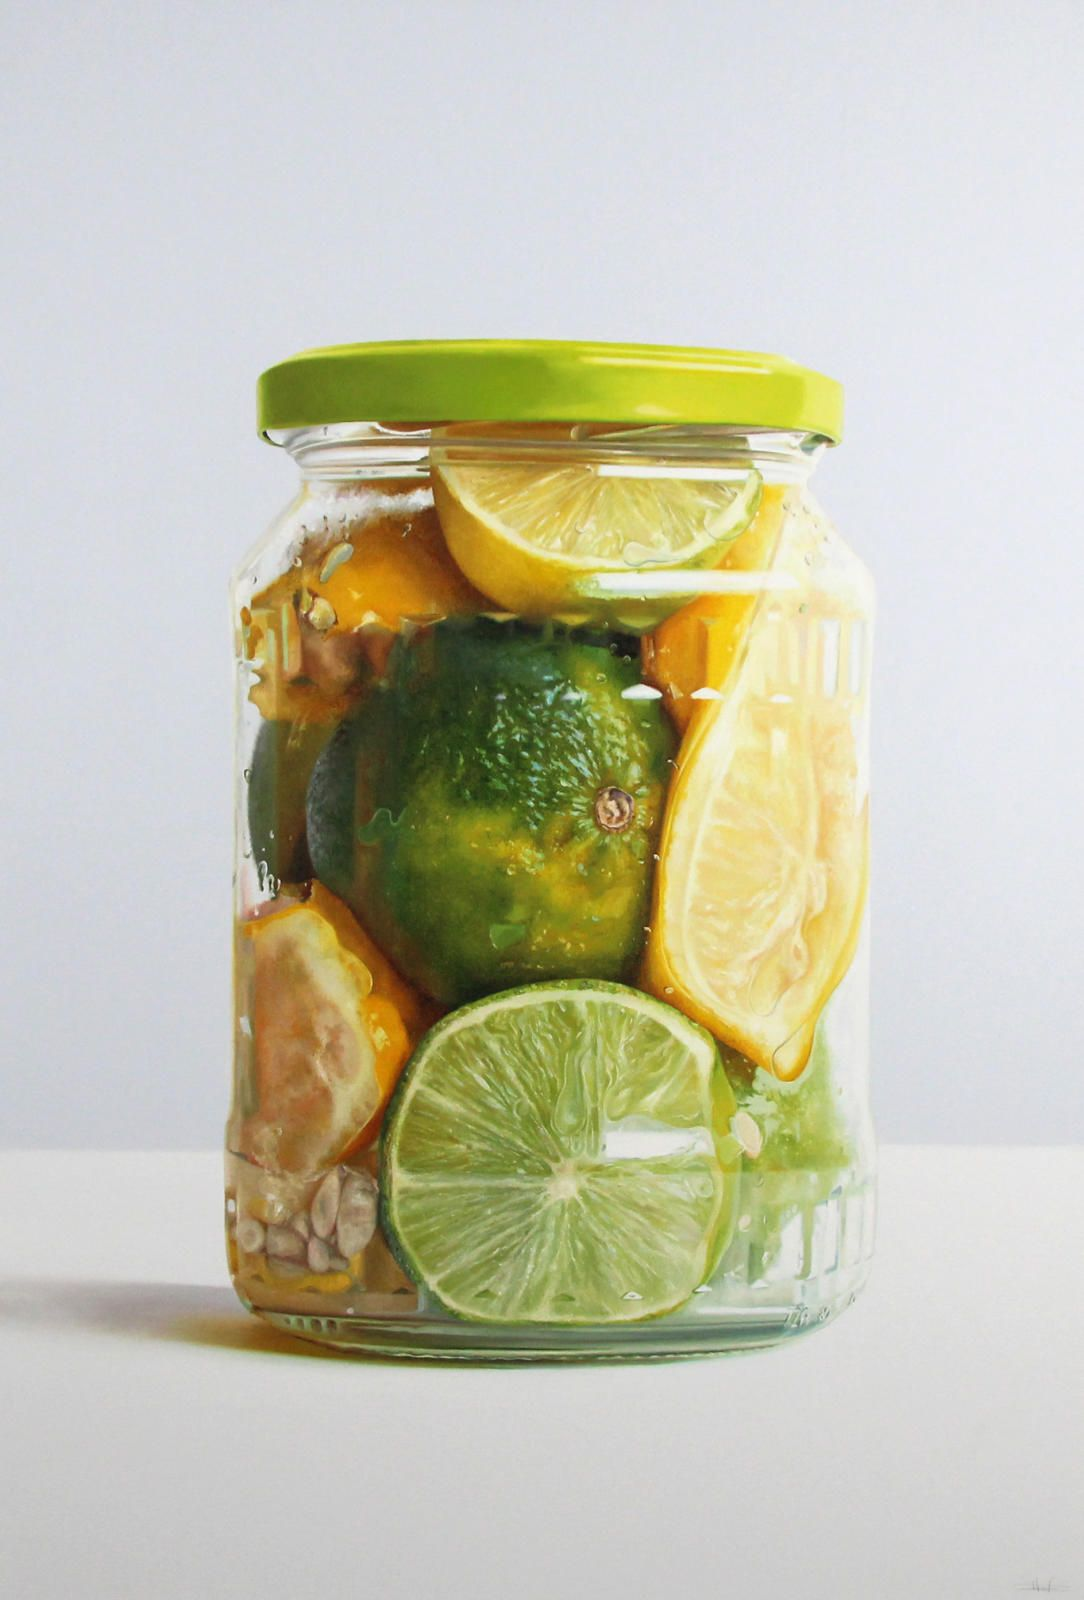 Lemons and Limes in a Jar